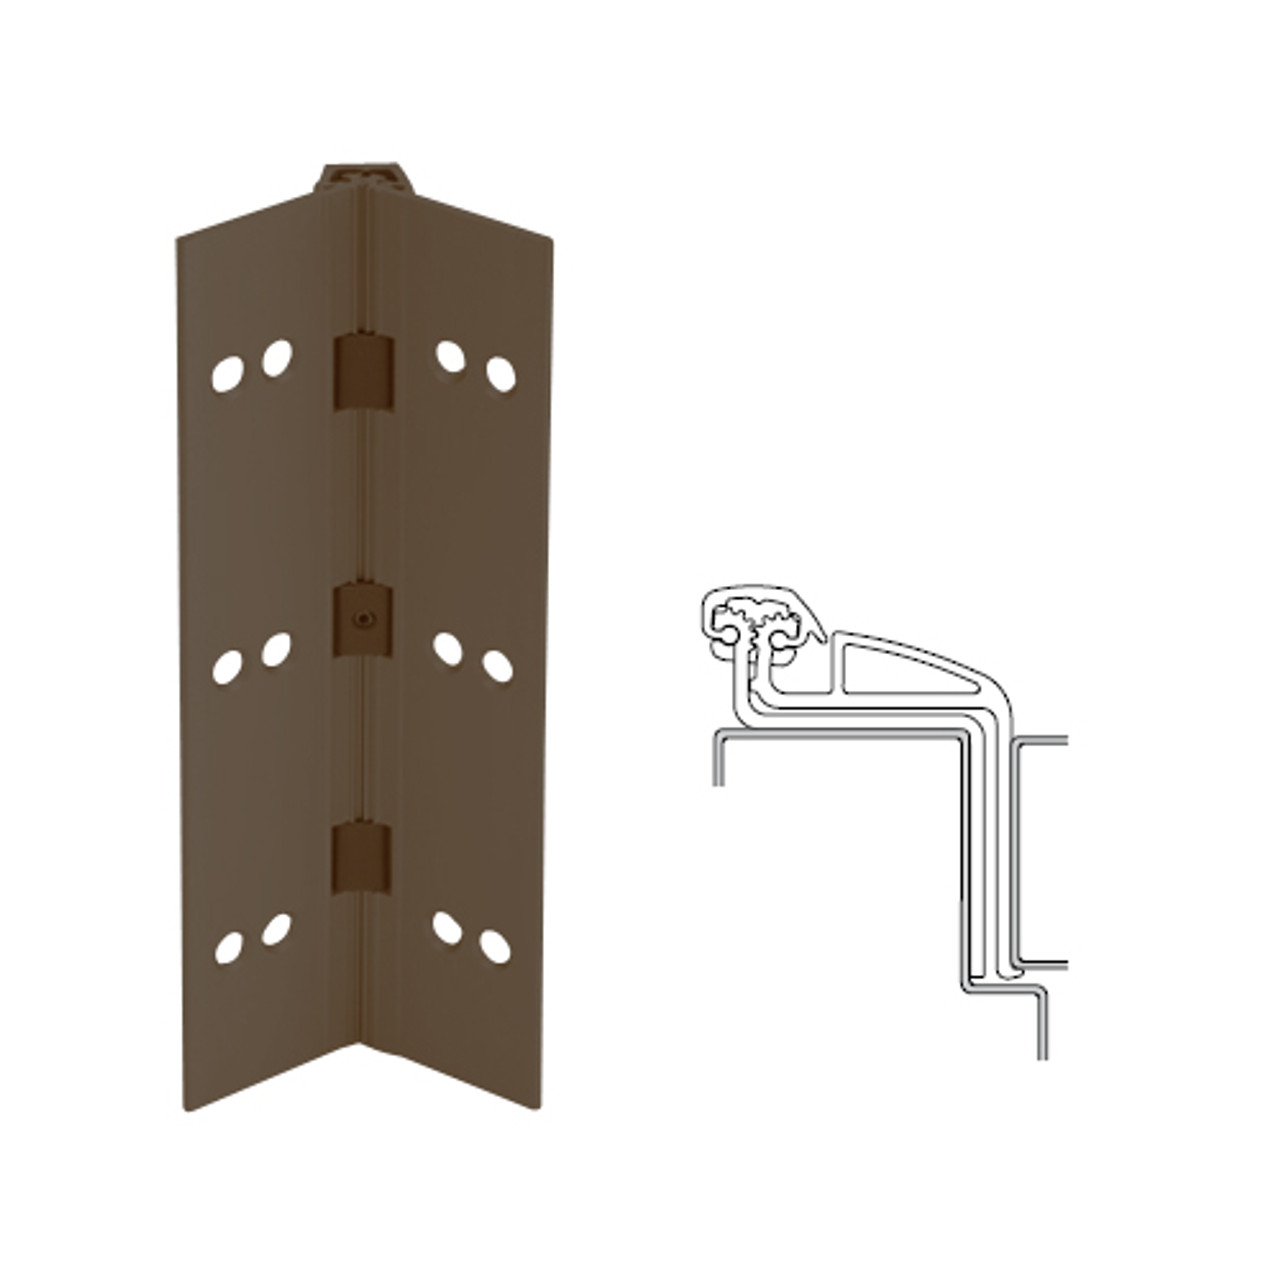 041XY-313AN-120 IVES Full Mortise Continuous Geared Hinges in Dark Bronze Anodized